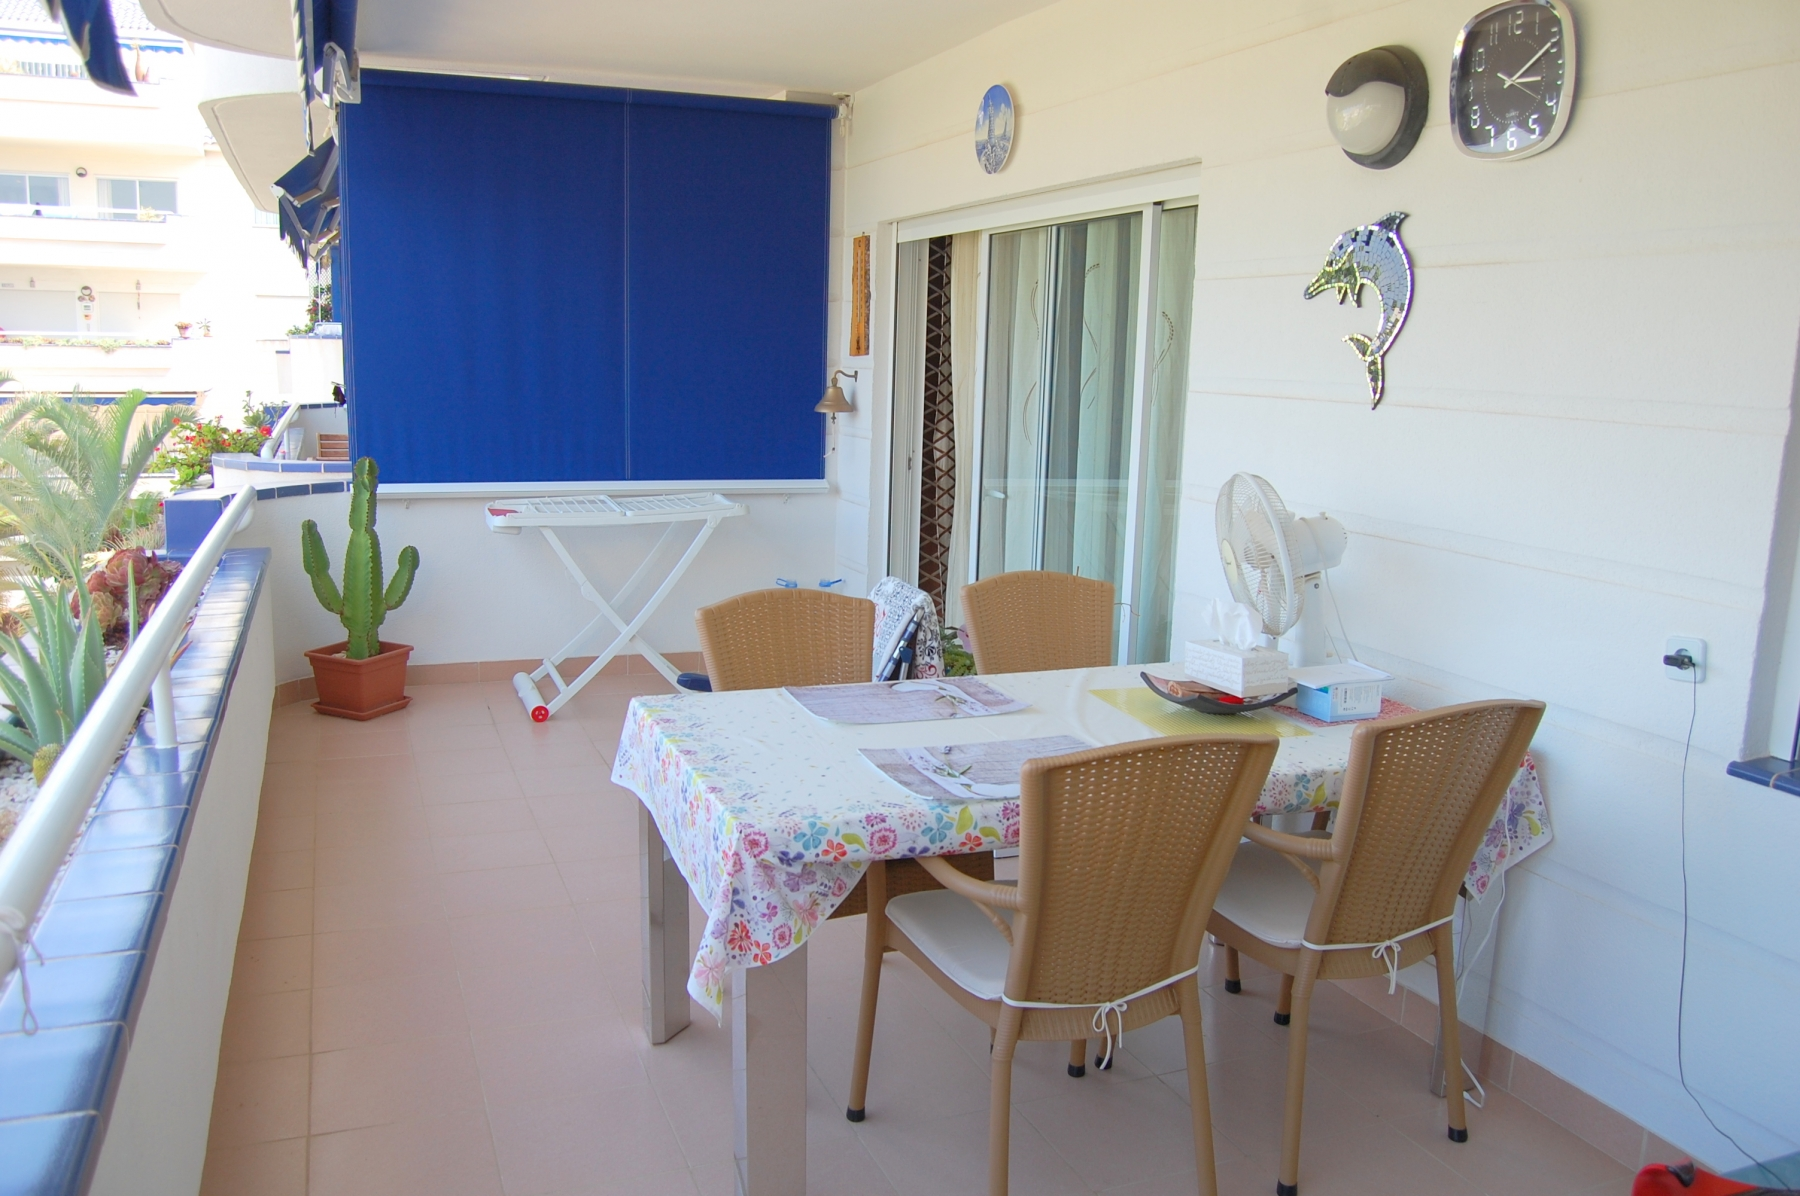 Properties for Sale in Tenerife, Canary Islands, Spain | SylkWayStar Real Estate. 4 Bedroom Apartment Graciosa 2. Image-24564